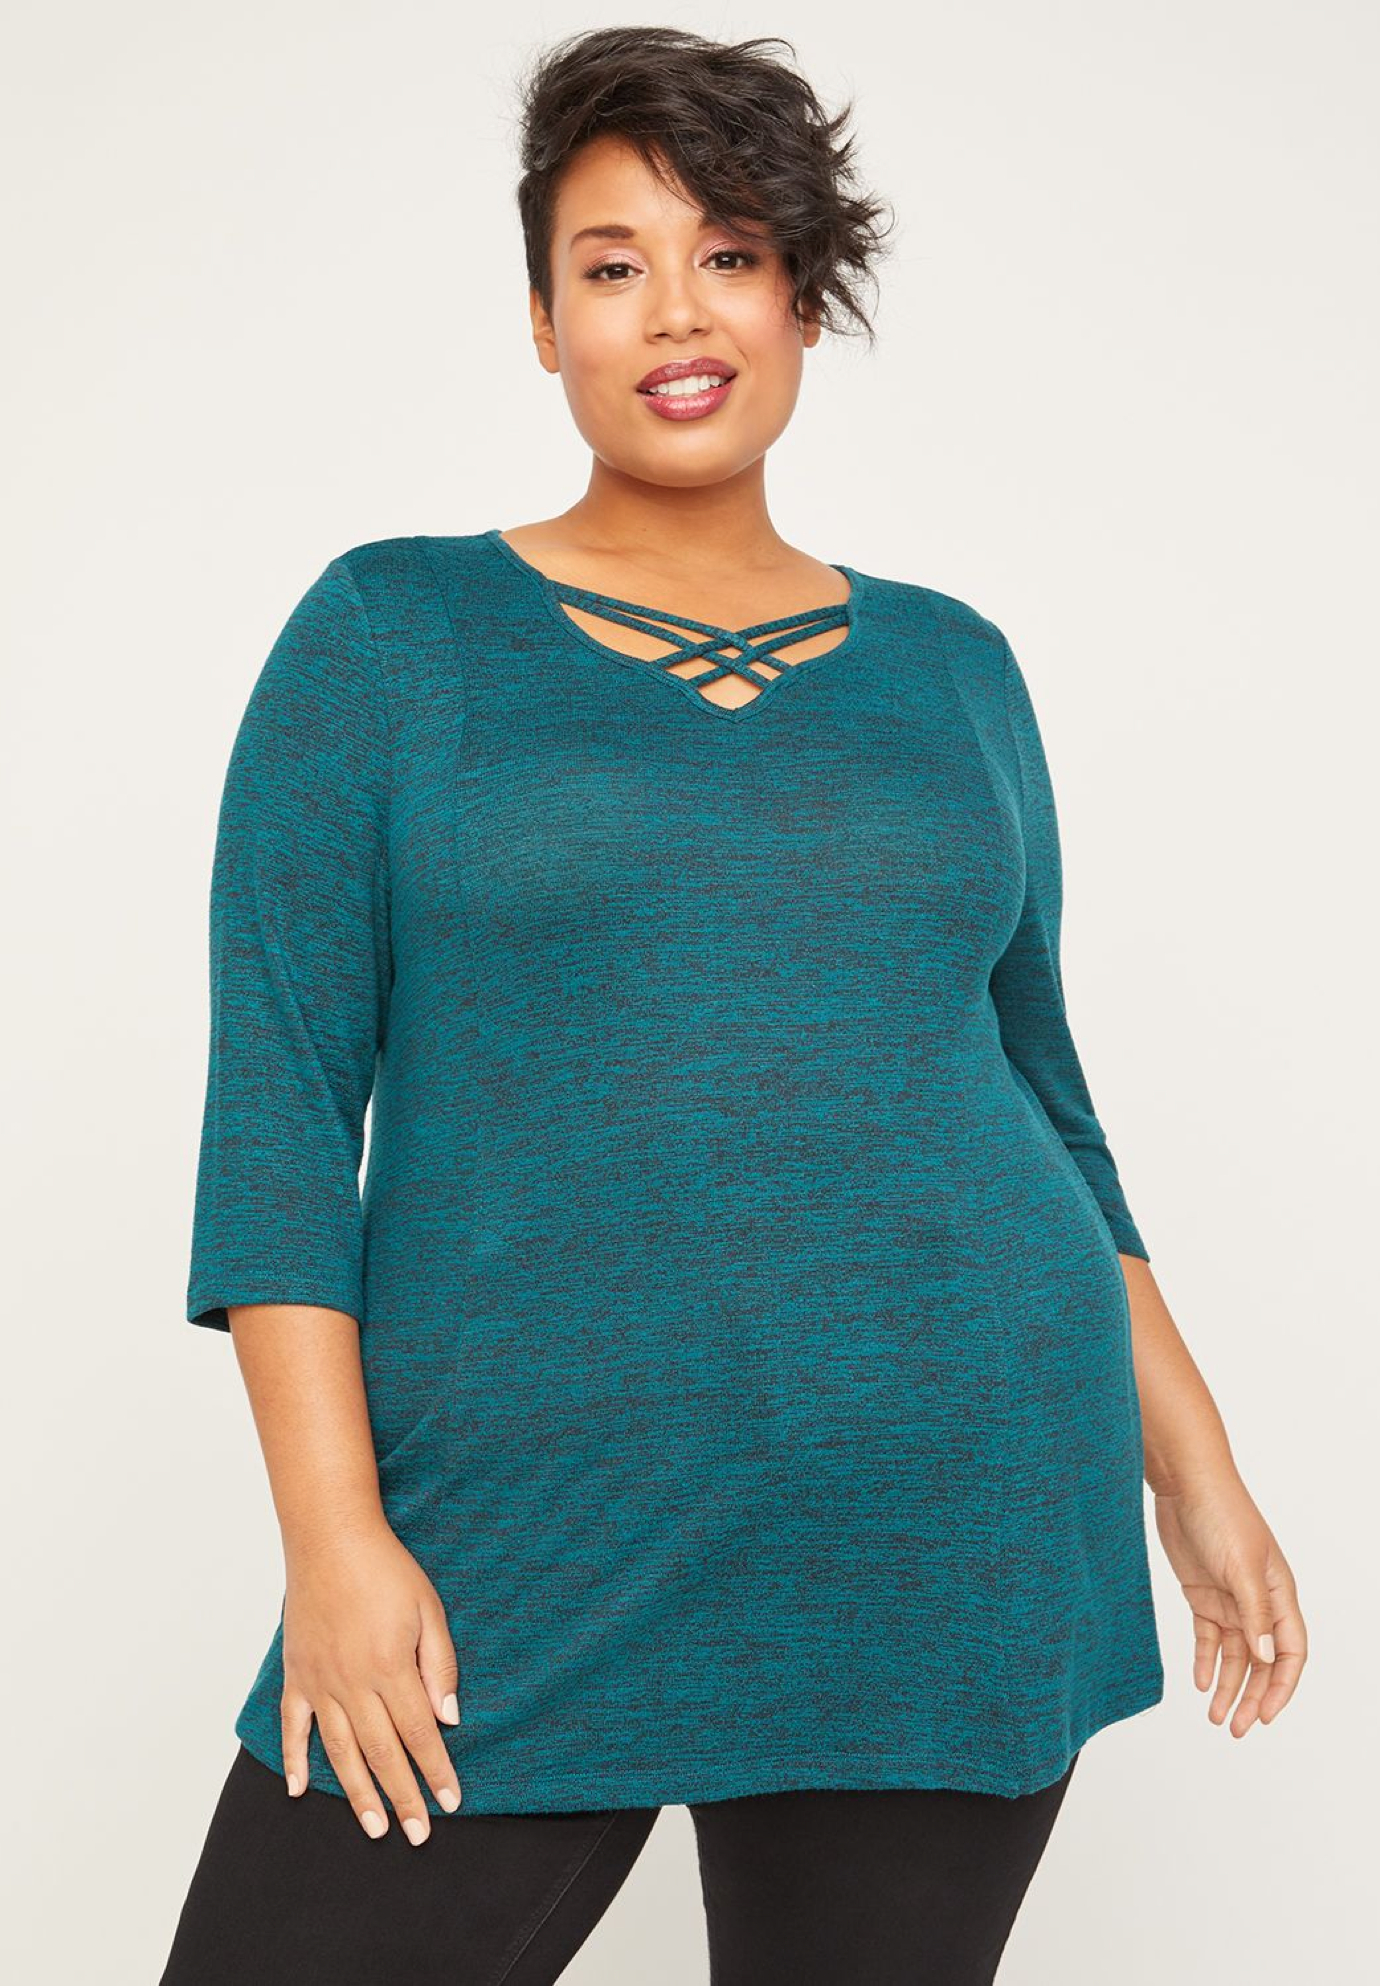 ComfySoft Crisscross Tunic,